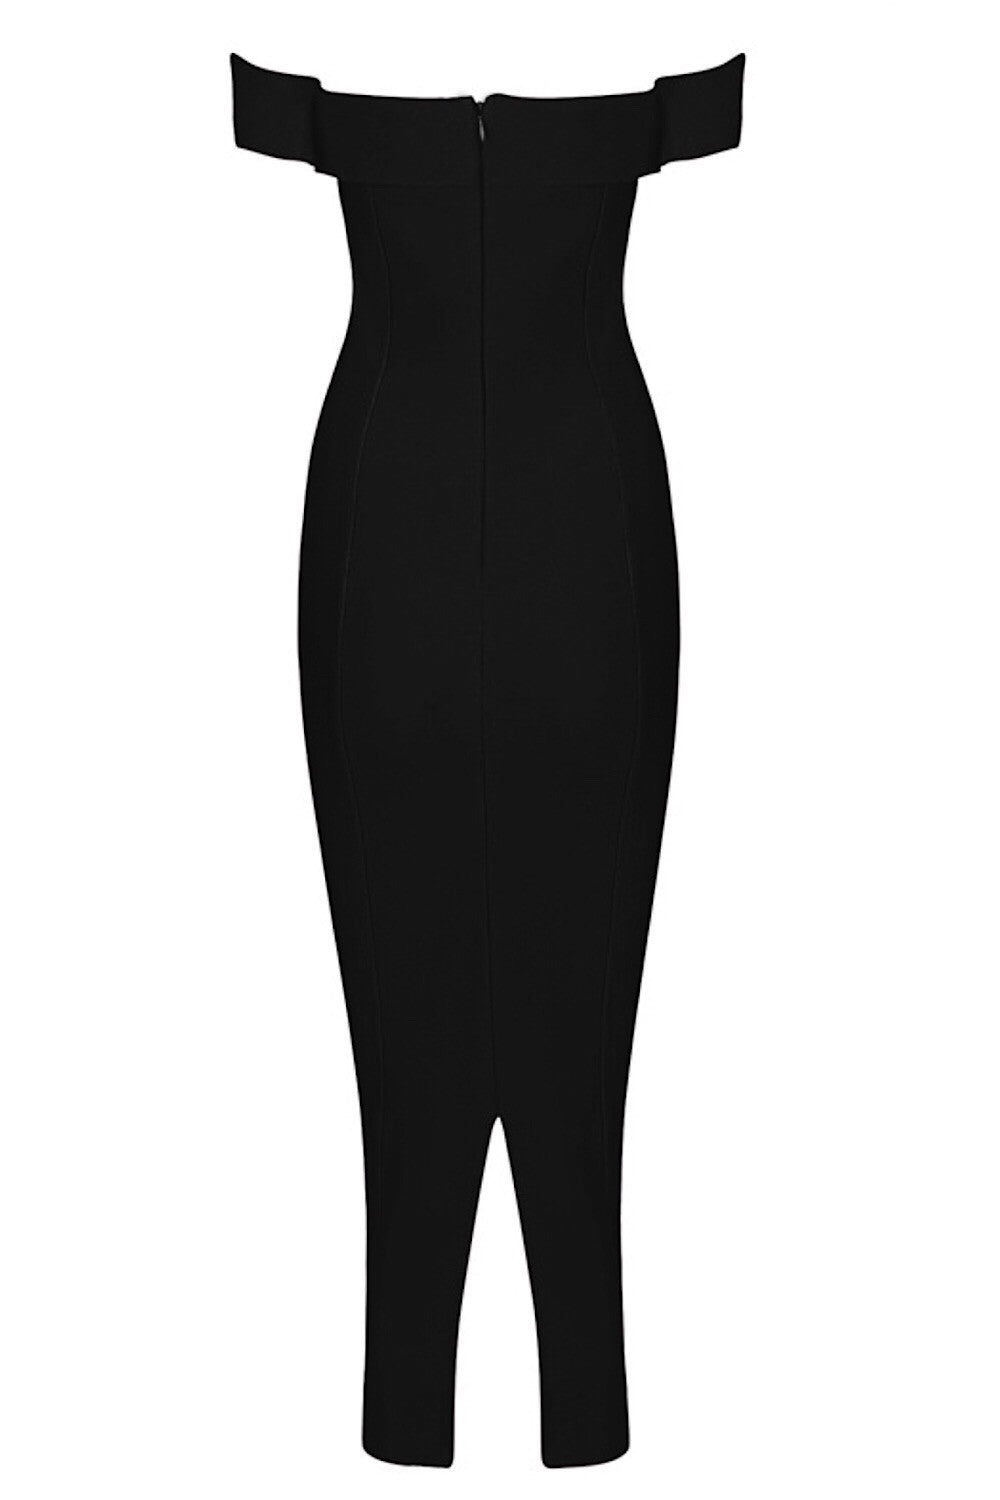 Amelia Black Bandage Dress